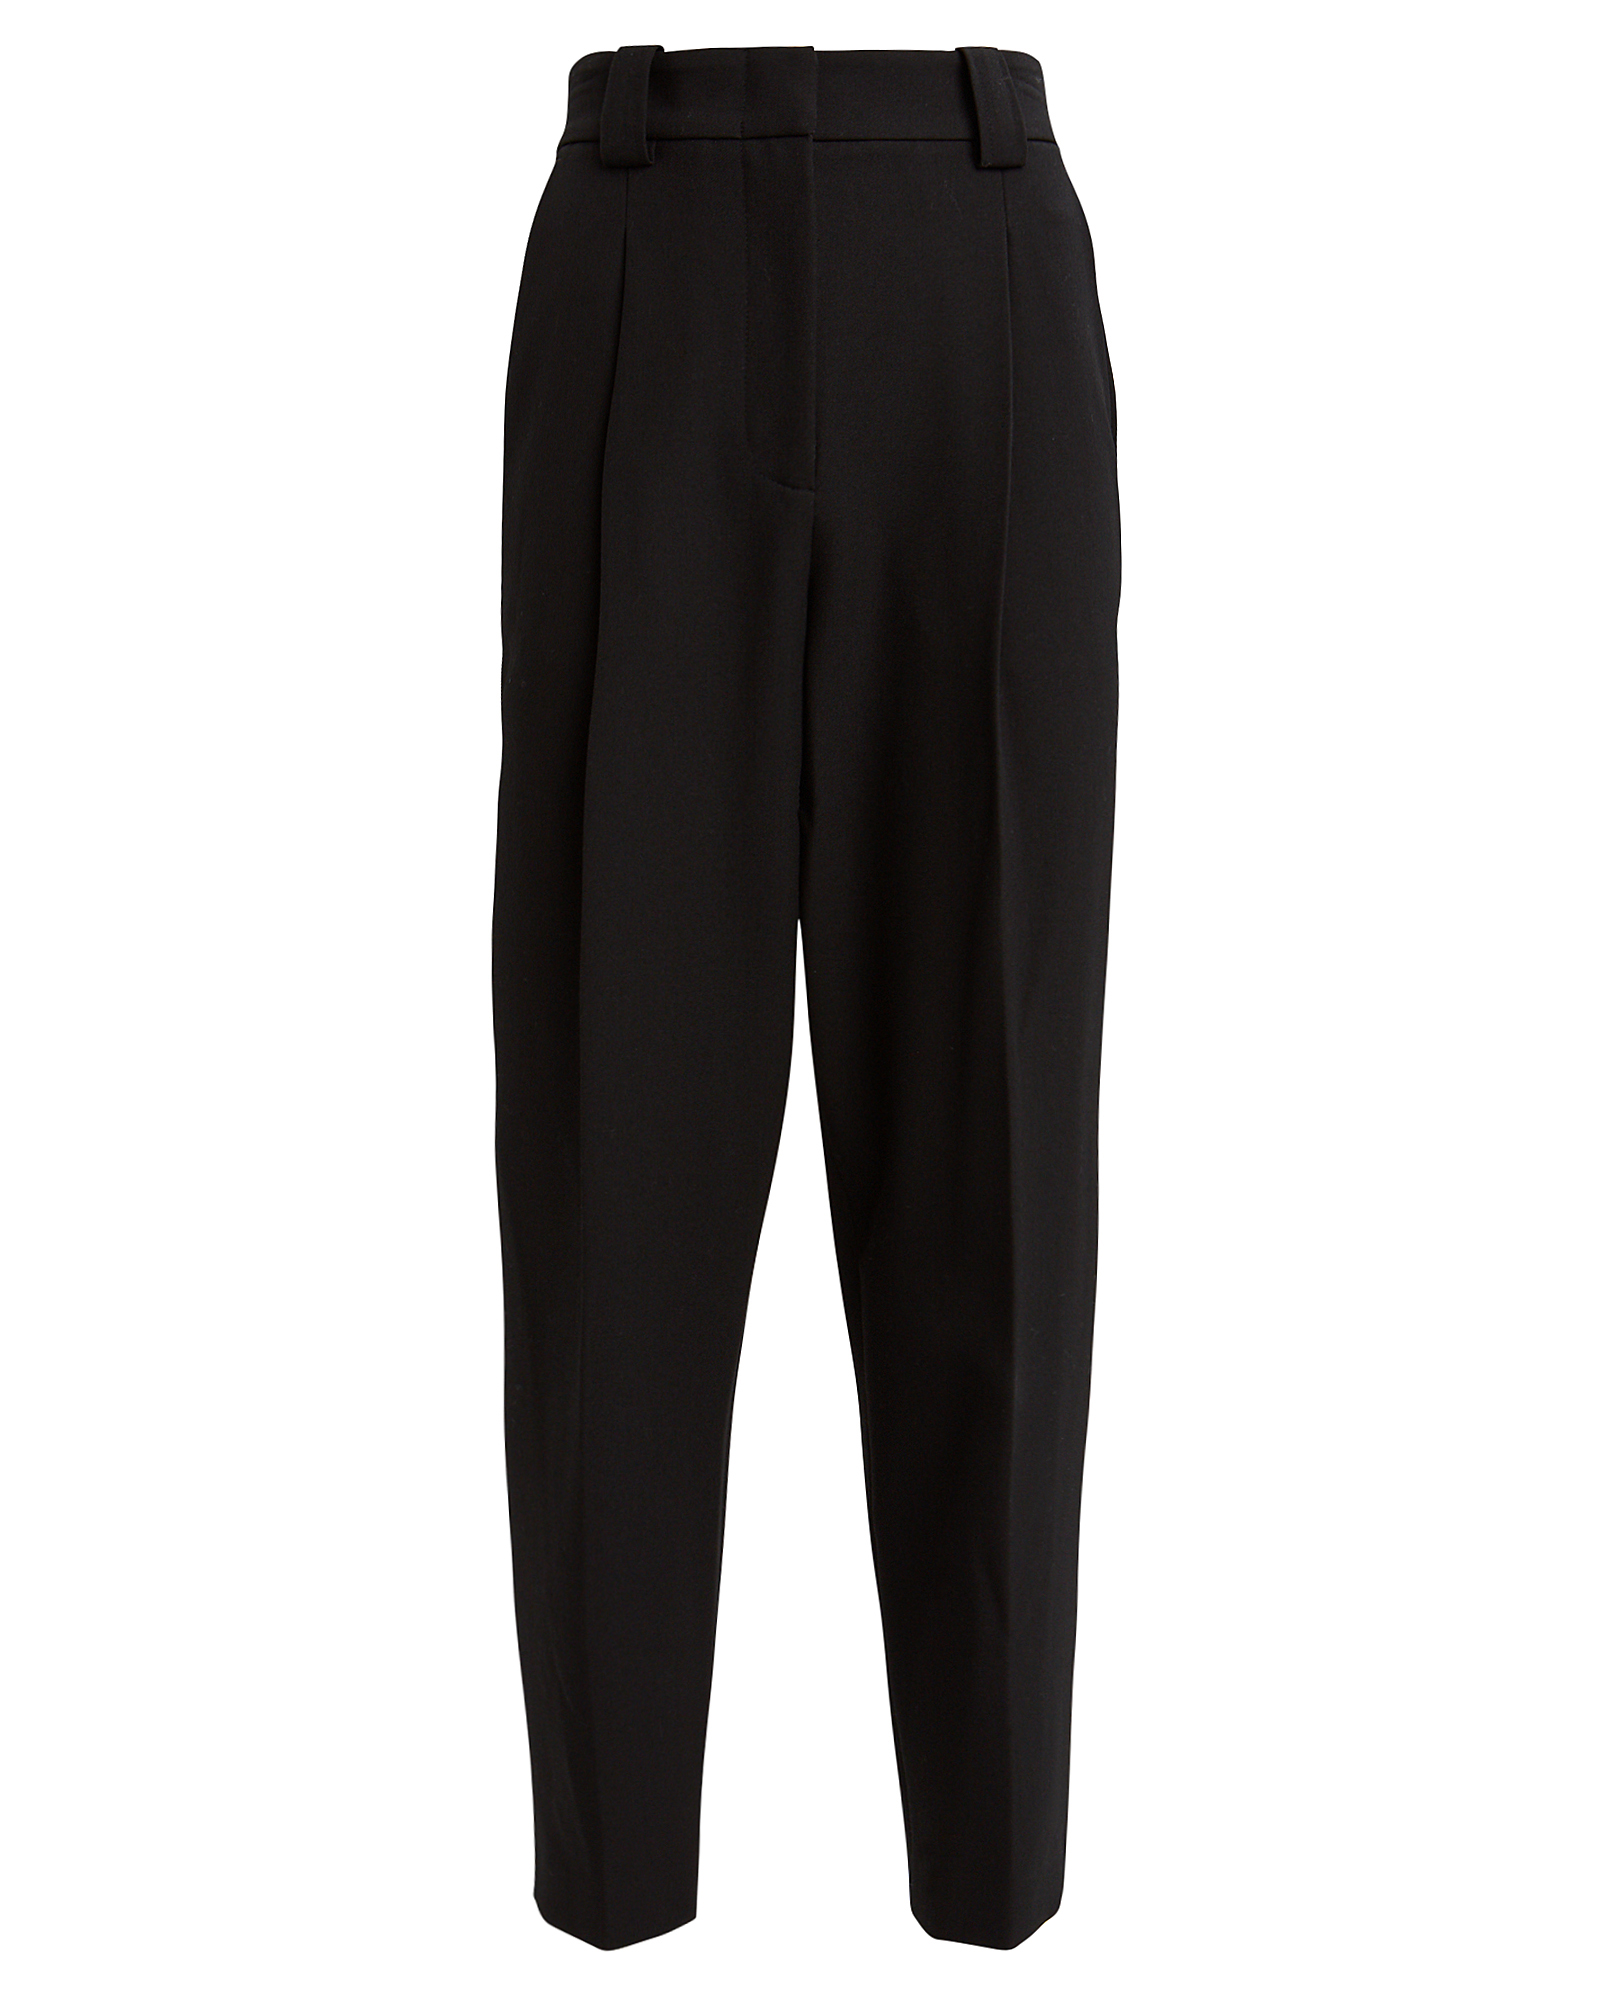 A.l.c Pants A.L.C. COLLIN HIGH-RISE PINTUCK TROUSERS